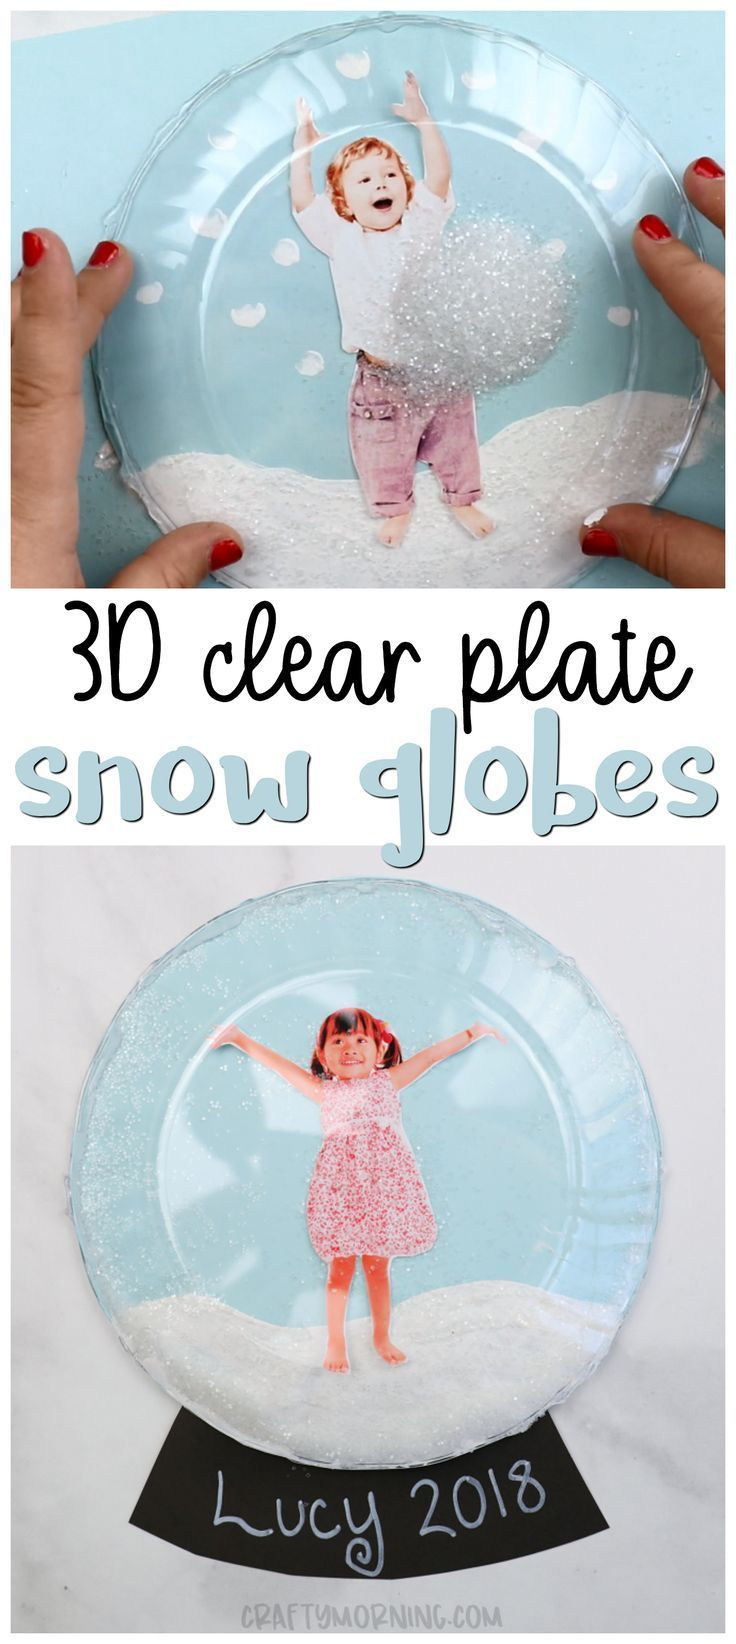 Make some 3D clear plate snow globe keepsakes! Fun winter craft for kids to make. Use plastic clear plates to make a fun art project. Great christmas gift to parents and grandparents. Shake the snow glitter so it falls over the kids! Photo gift idea.